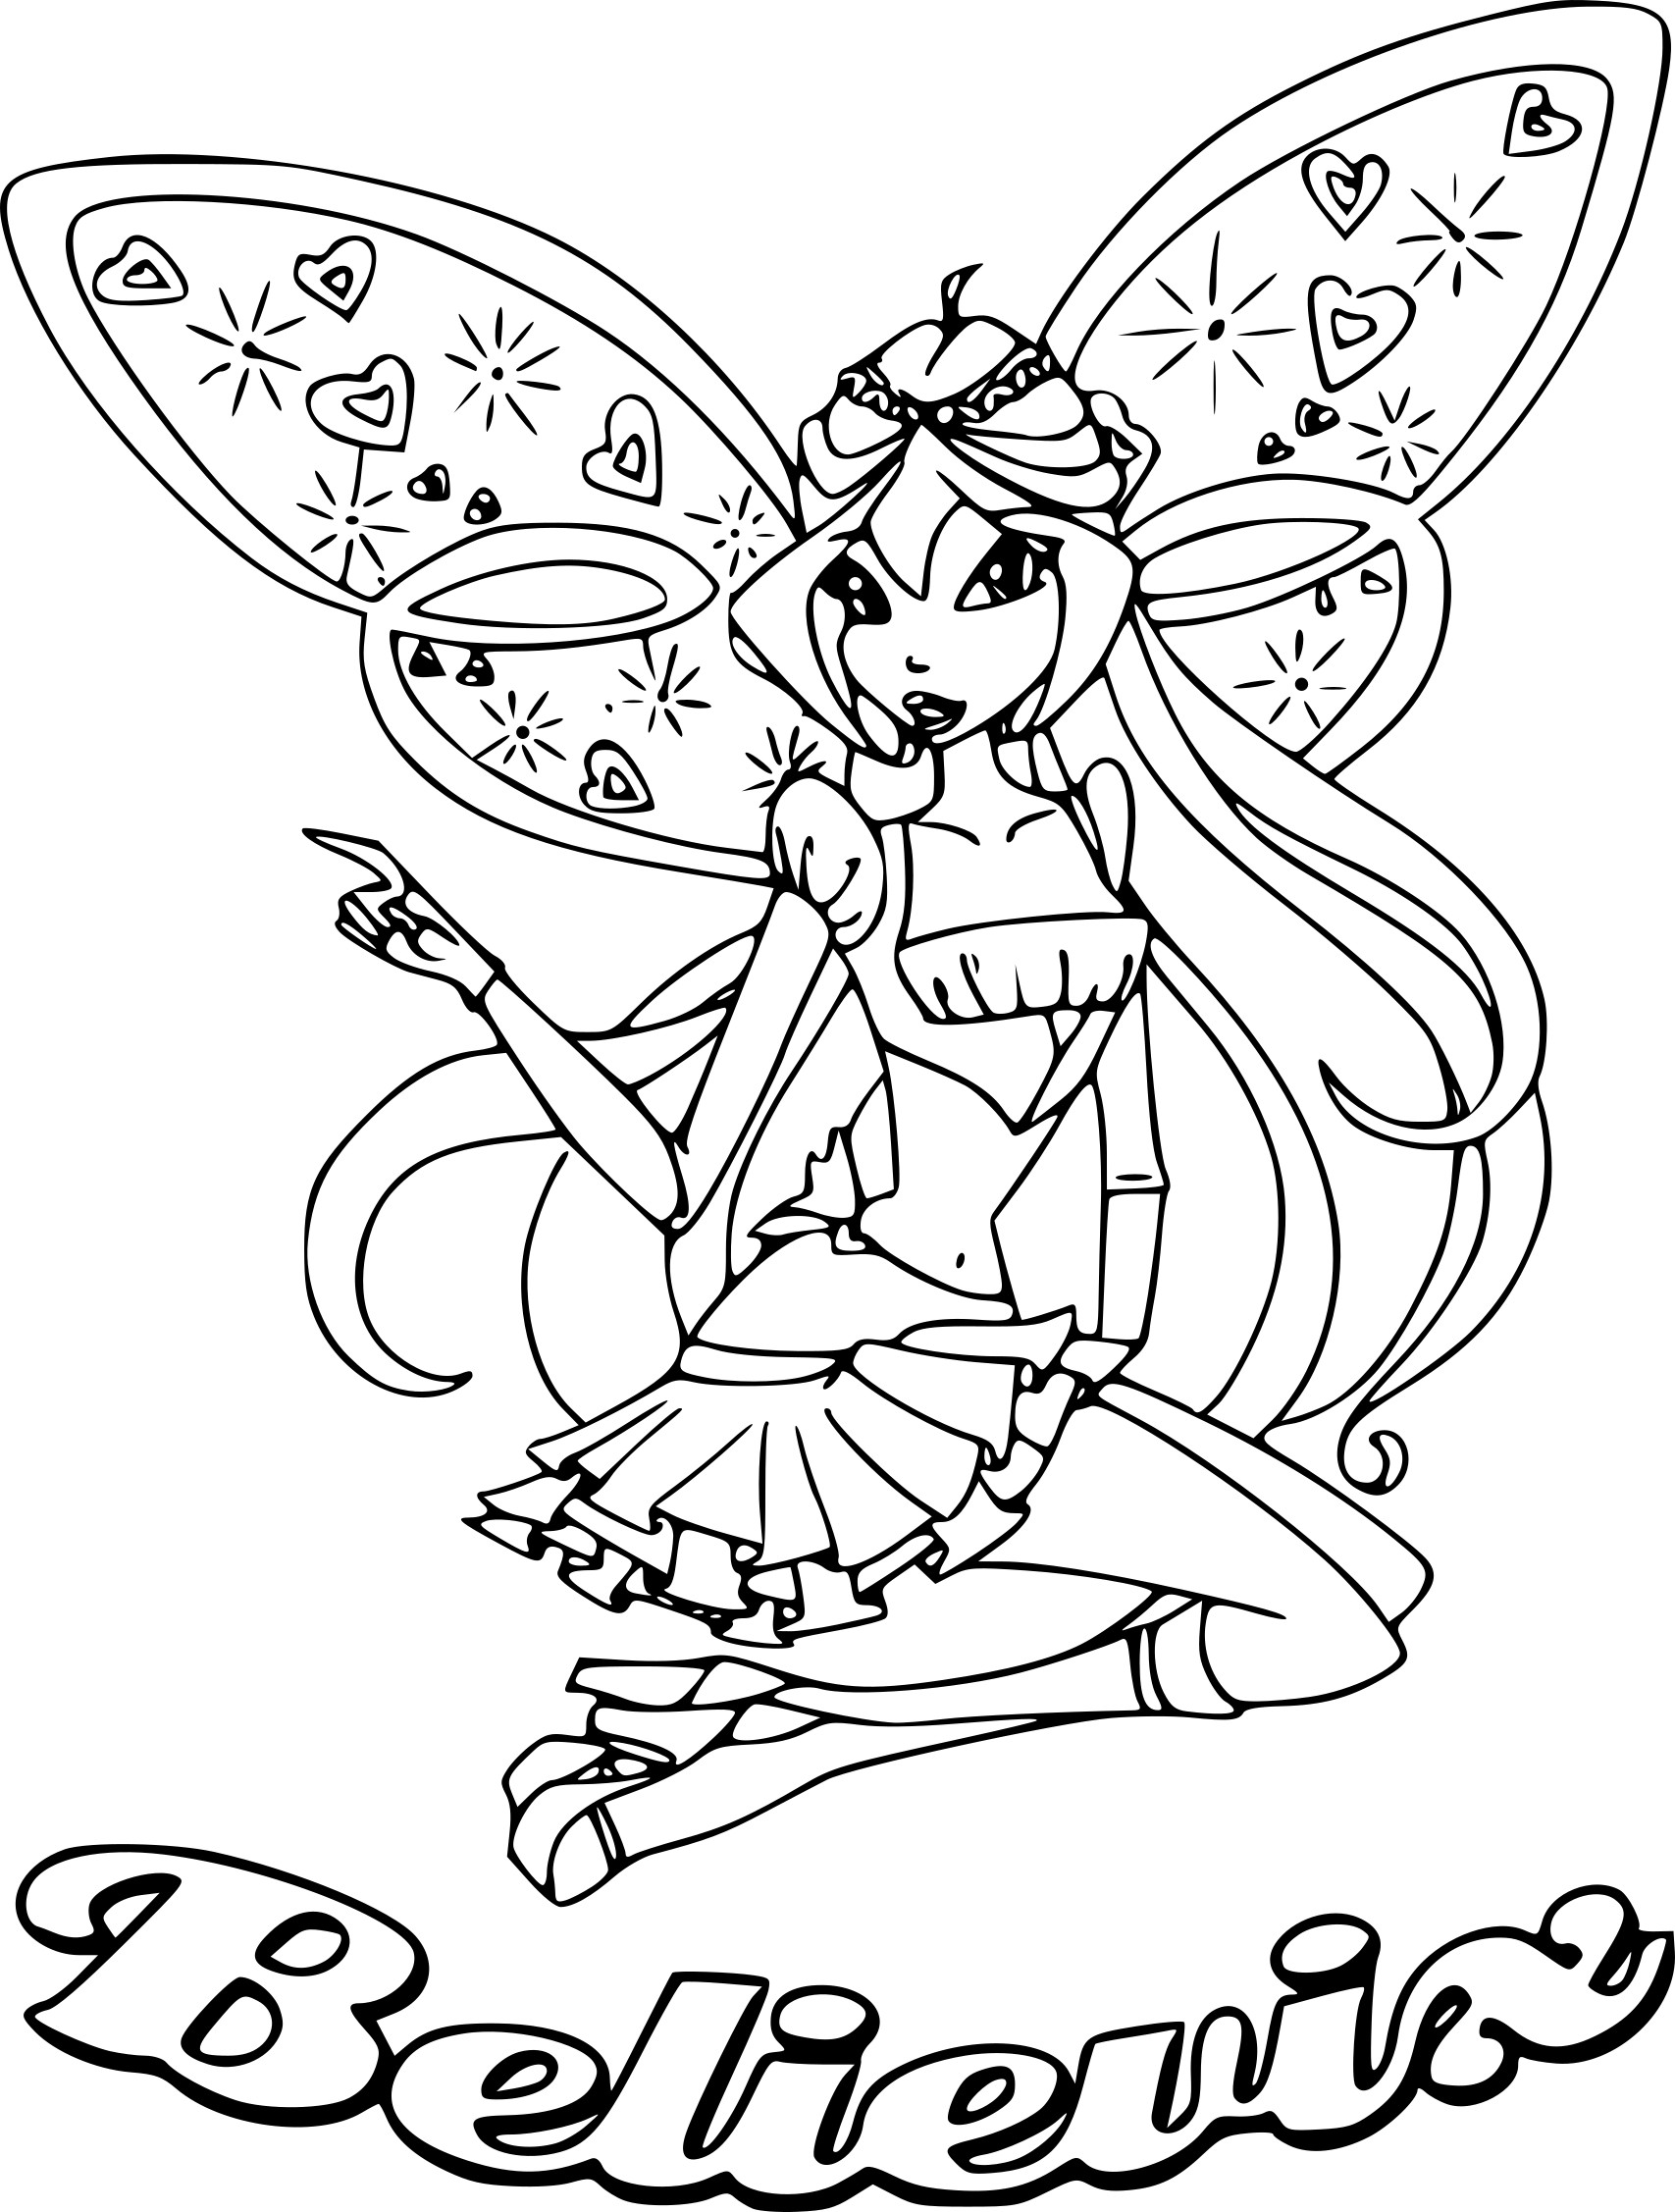 Coloriage winx believix imprimer sur coloriages info - Coloriage winx bloom ...